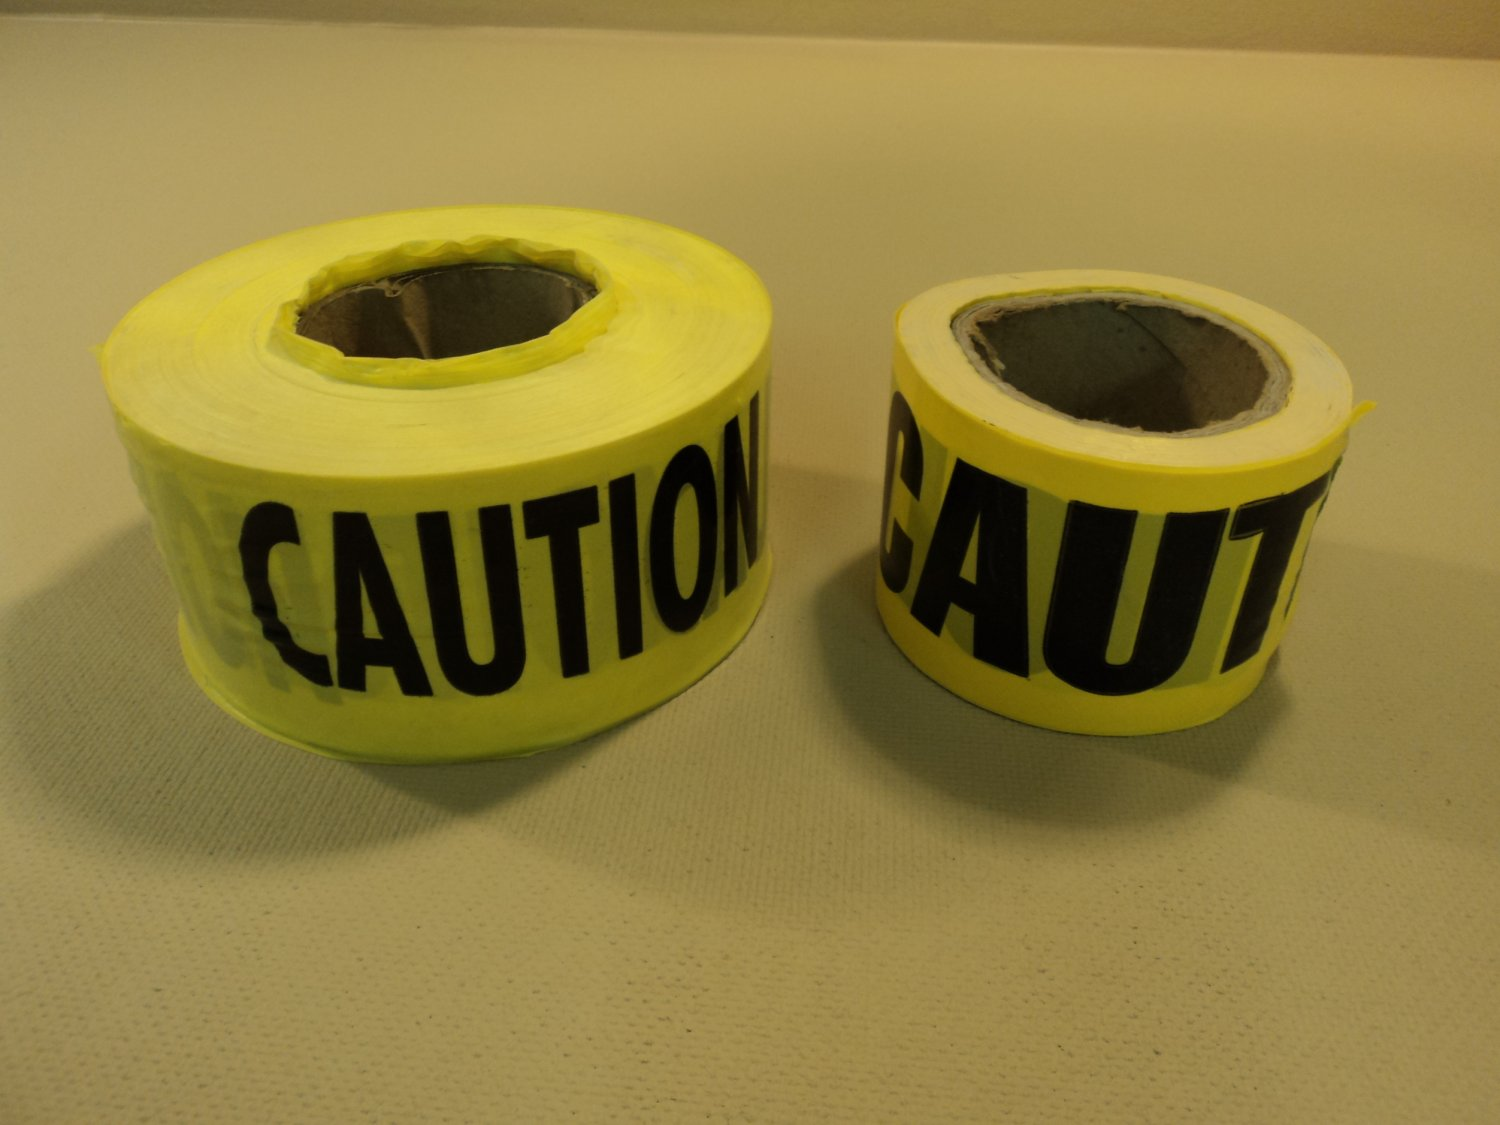 Standard Caution Tape 3-Inch Yellow/Black 2 Rolls